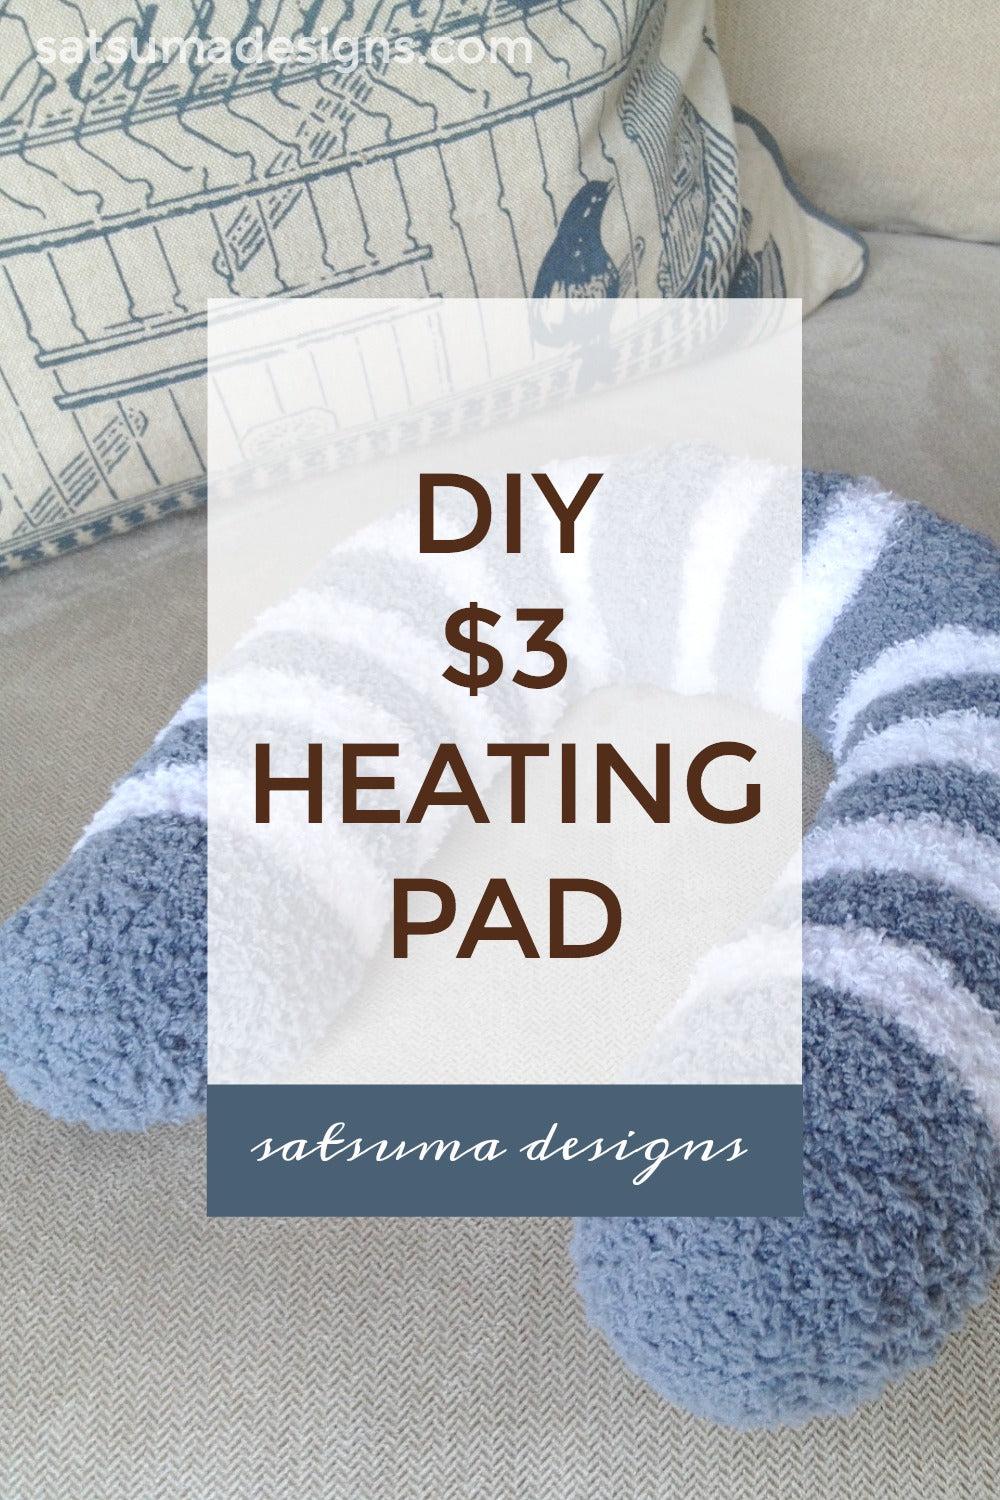 sew a cozy heat pad for $3 in 10 minutes natural maker mom at satsuma designs DIY $3 heating pad | Easy to make heating pad with $3 dollar store supplies #spa #relax #zen #spaday #athomespa #retreat #calm #meditate